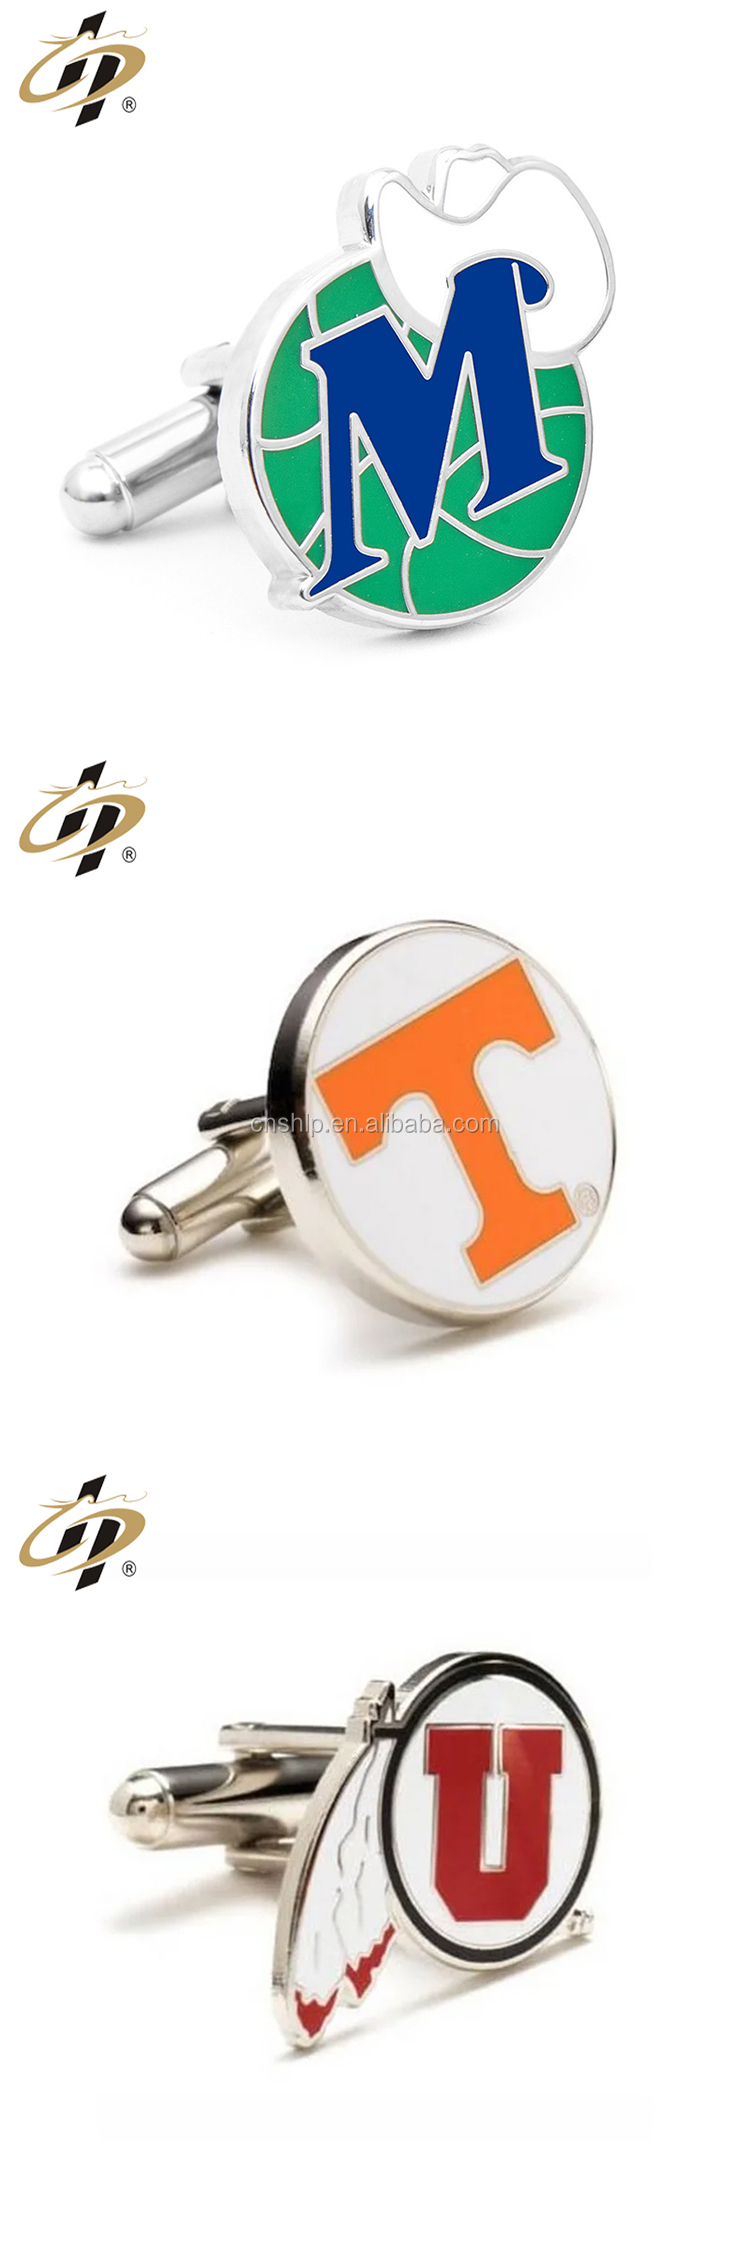 Custom engraved logo unique design your own metal cufflinks with enamel